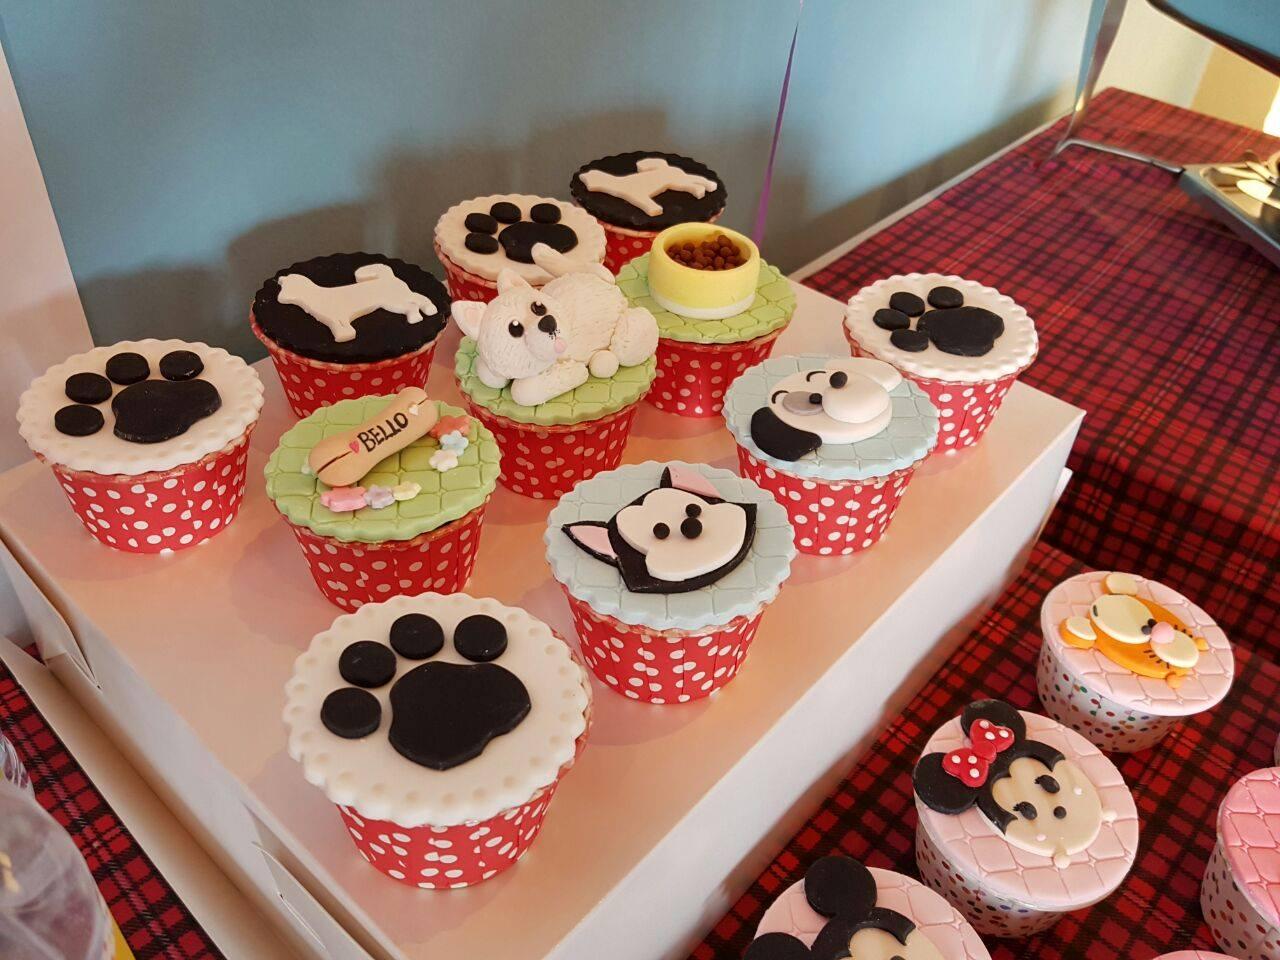 Image from Blink Pets Bakery